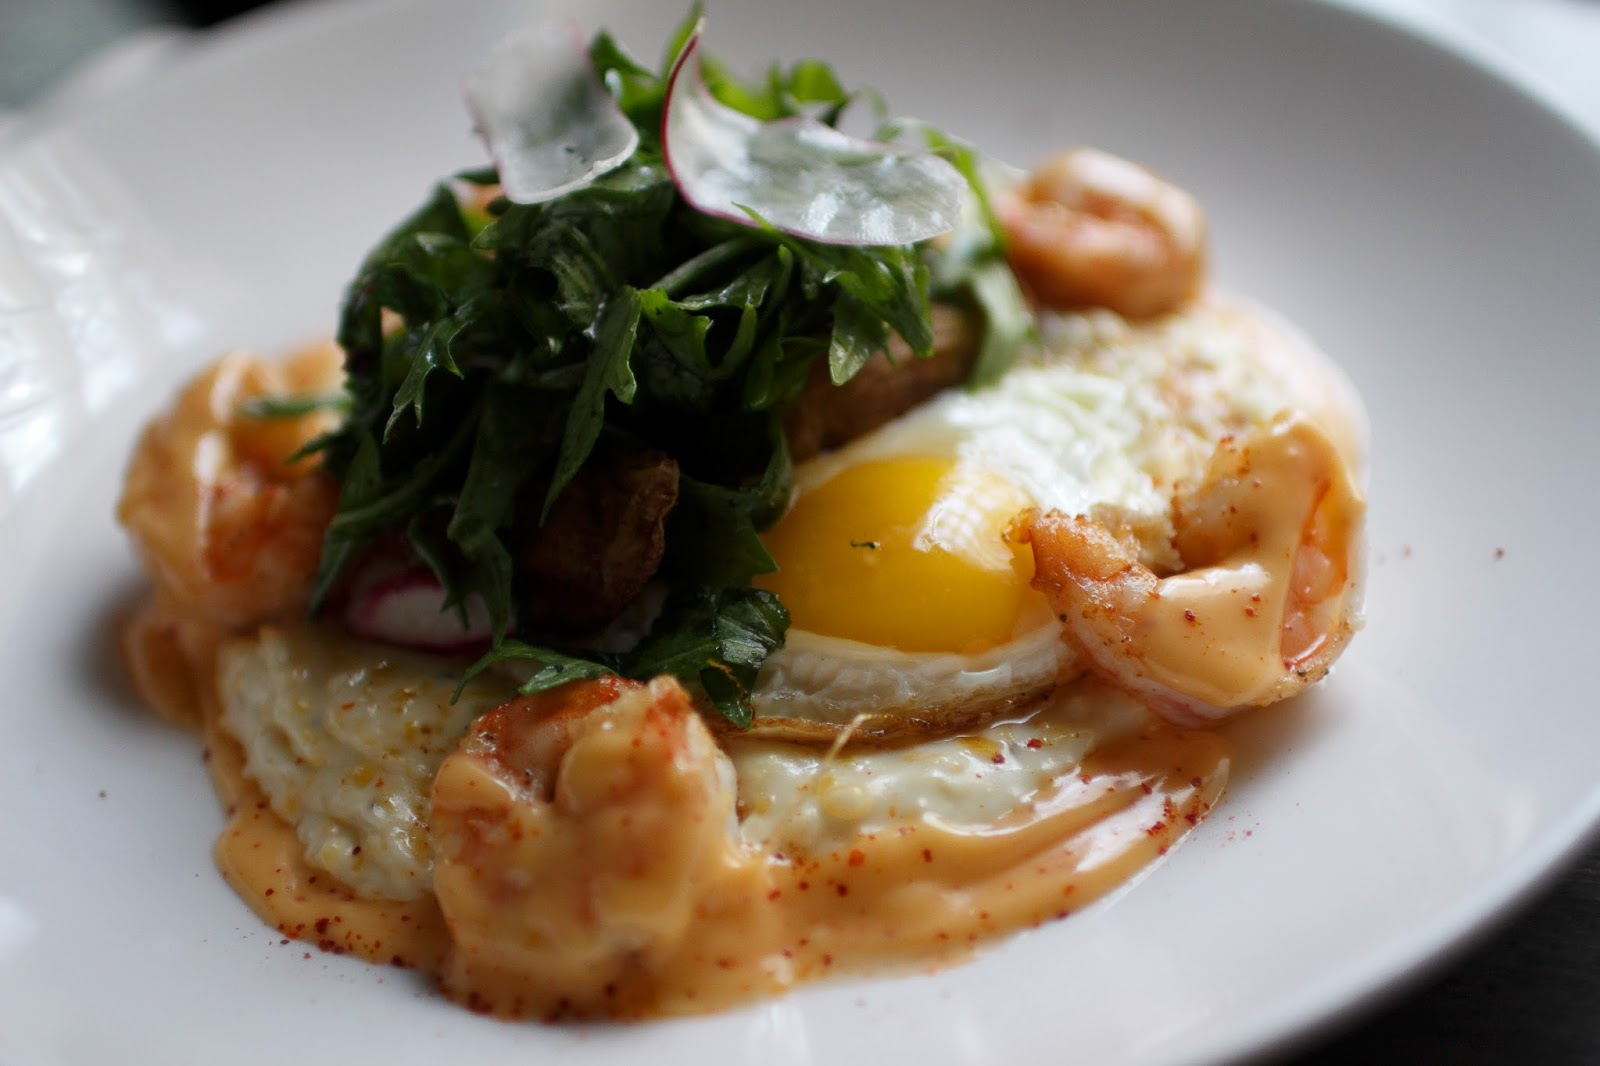 The-Fainting-Goat Brunch-Washington-DC | A.Viza Style | brunch-review-shrimp-grits